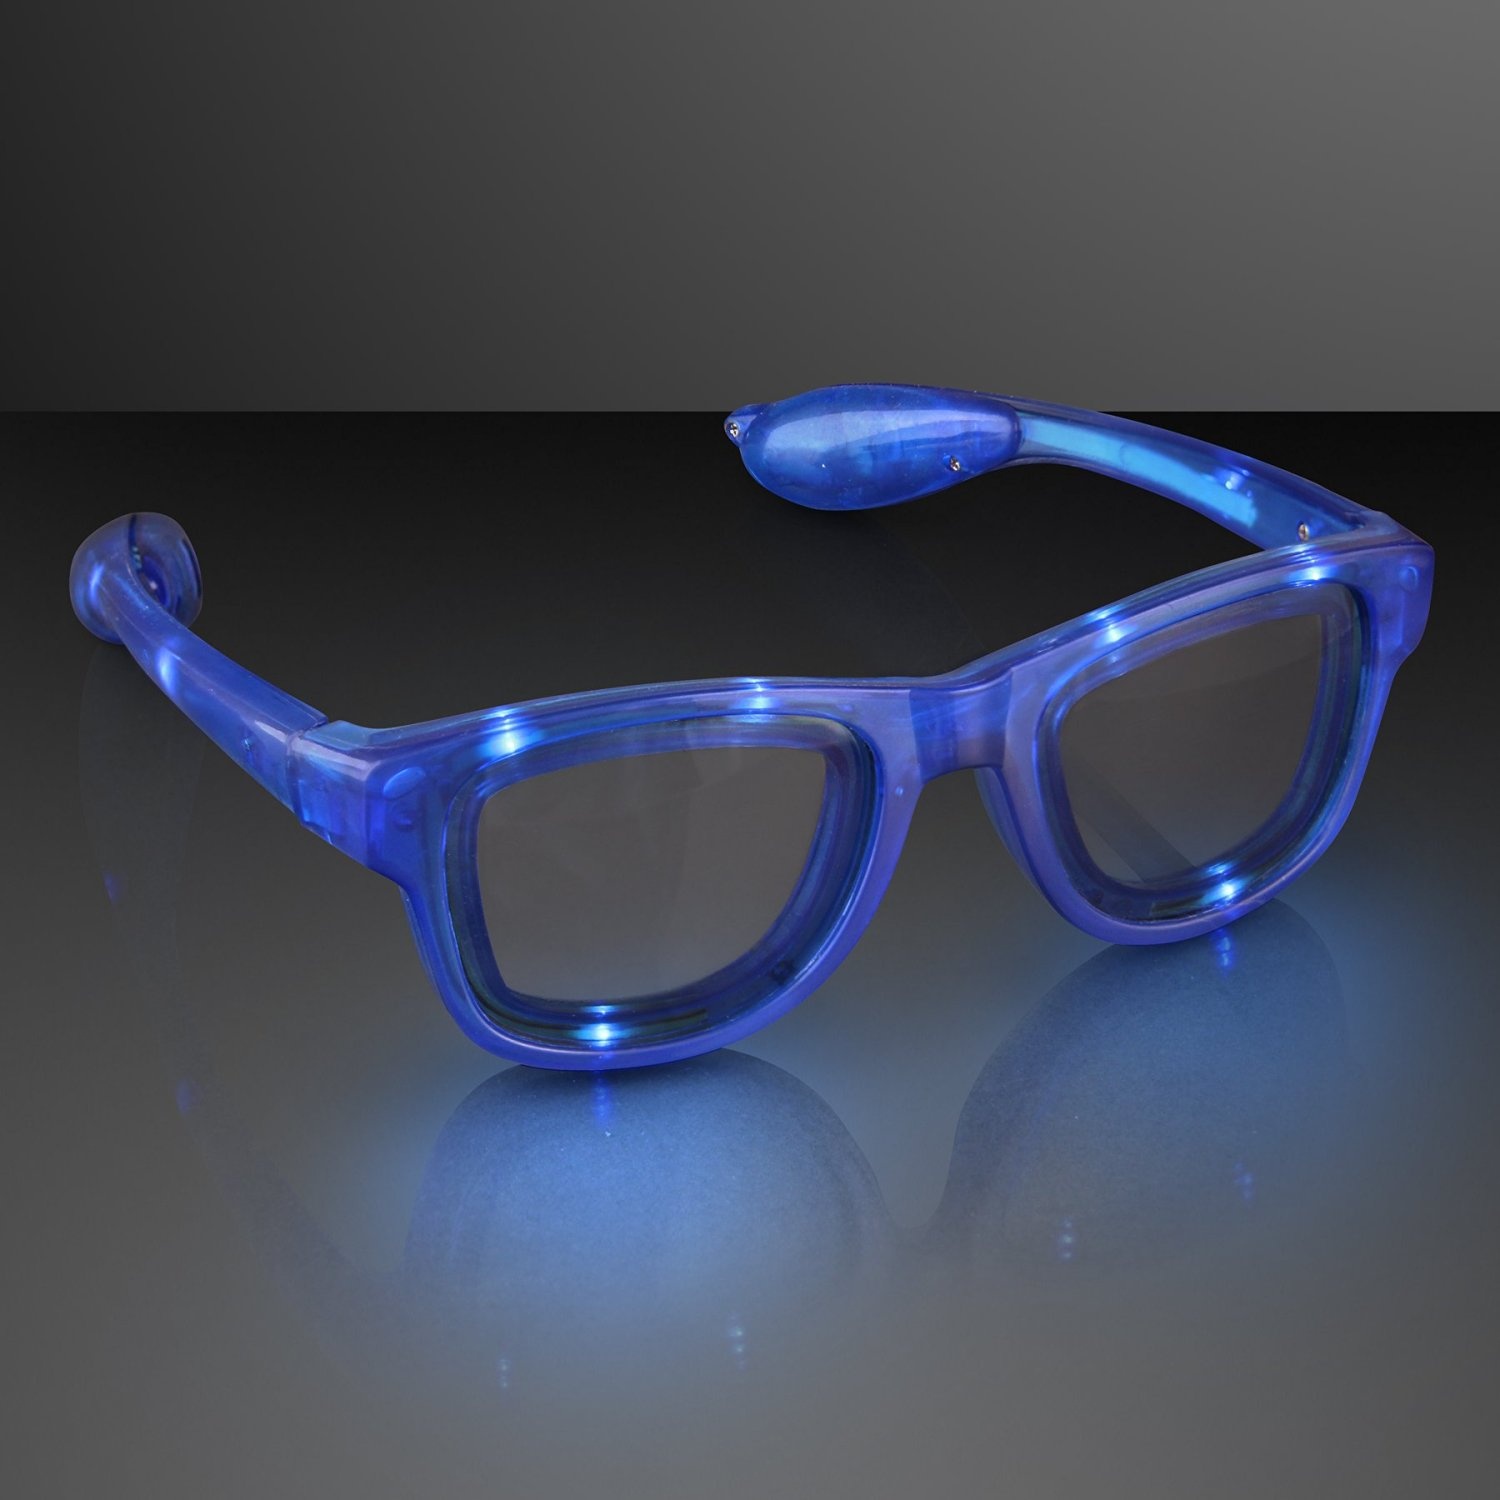 neon el intl up wire shutter fashion sale led jd designer for glasses online new tianyou men shop mens light fashionable